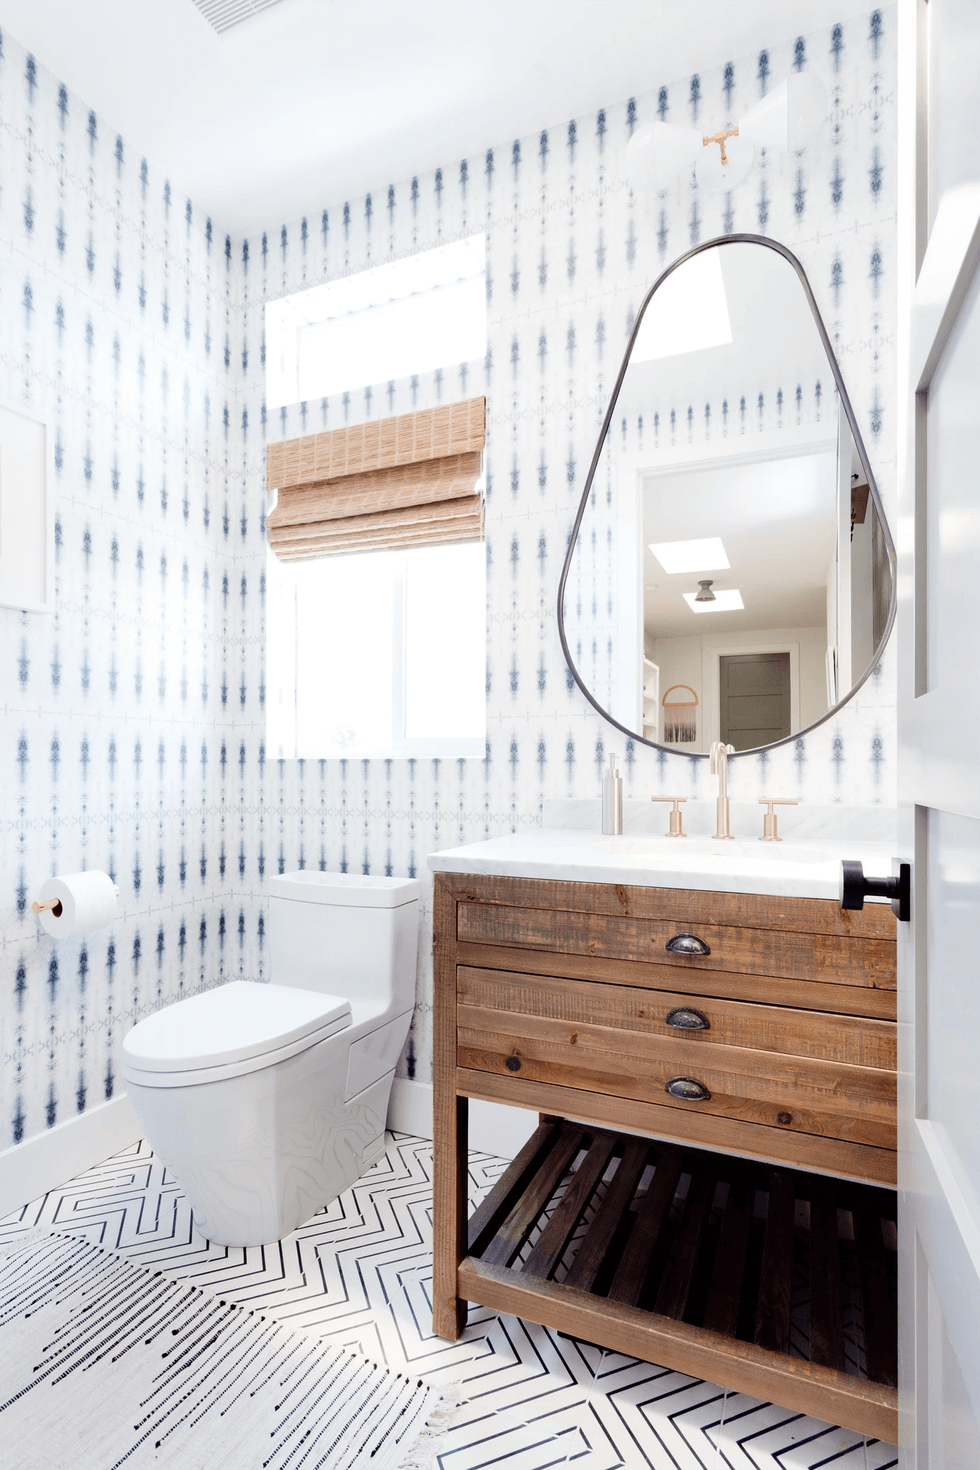 shibori wallpapered bathroom